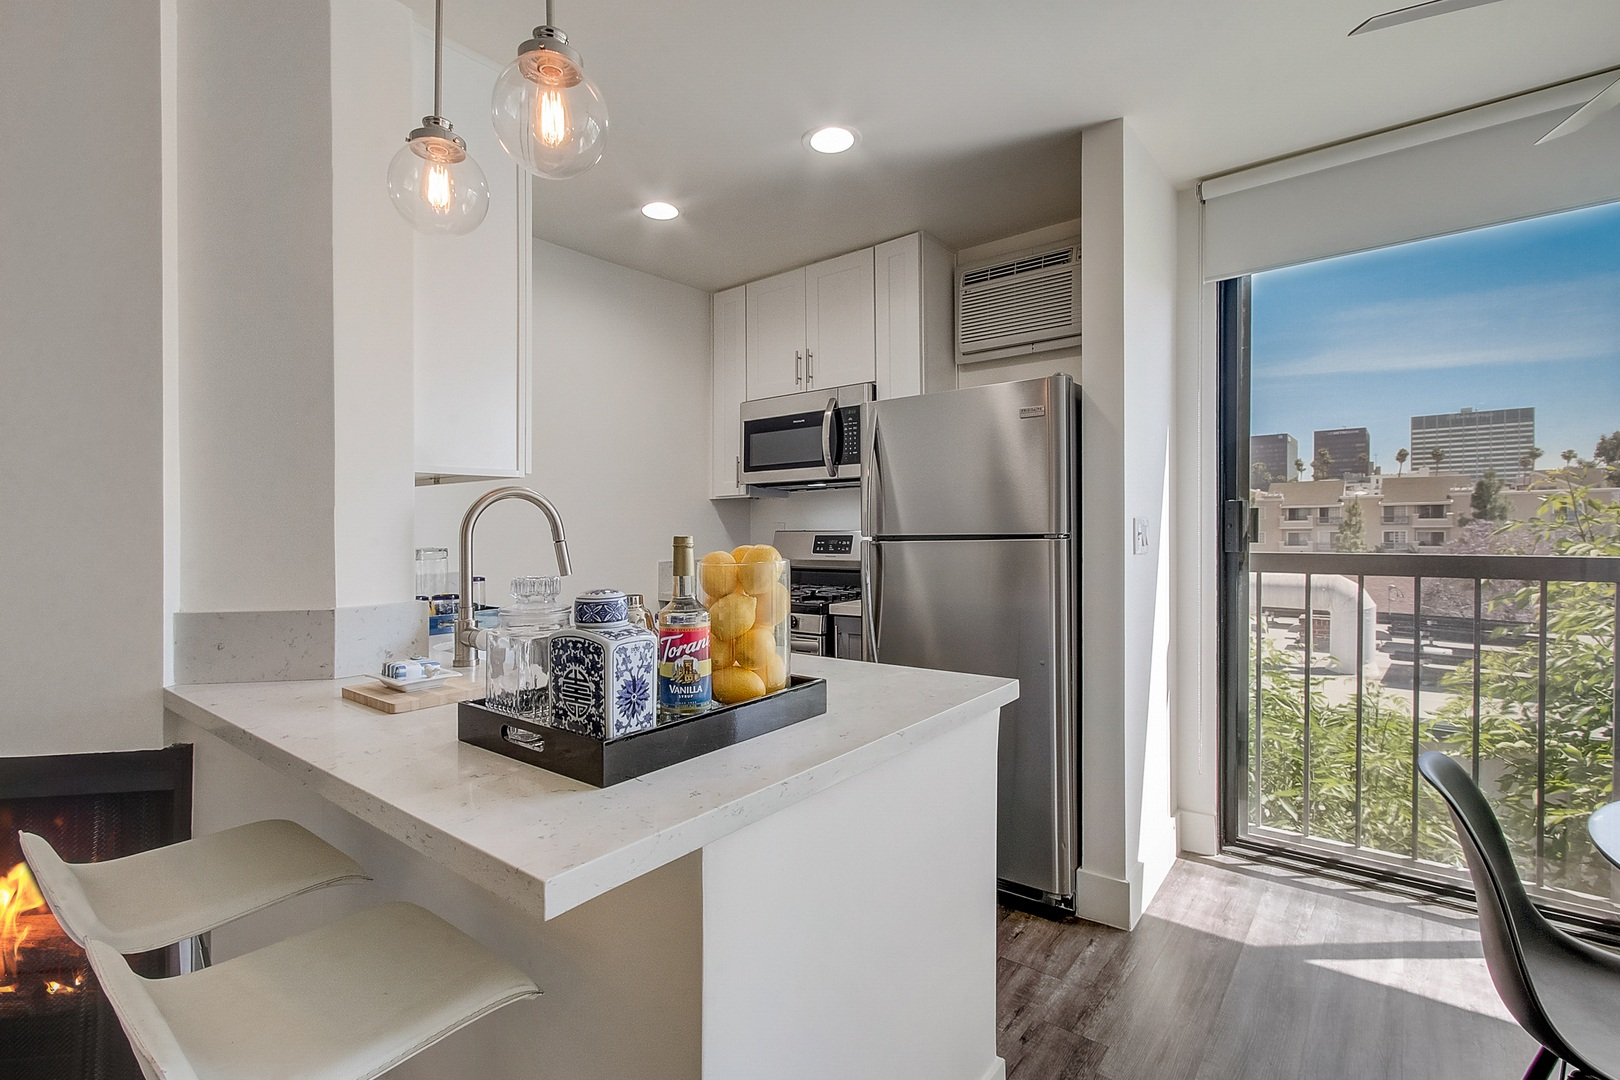 333 South Kingsley Drive - 2105USD / month